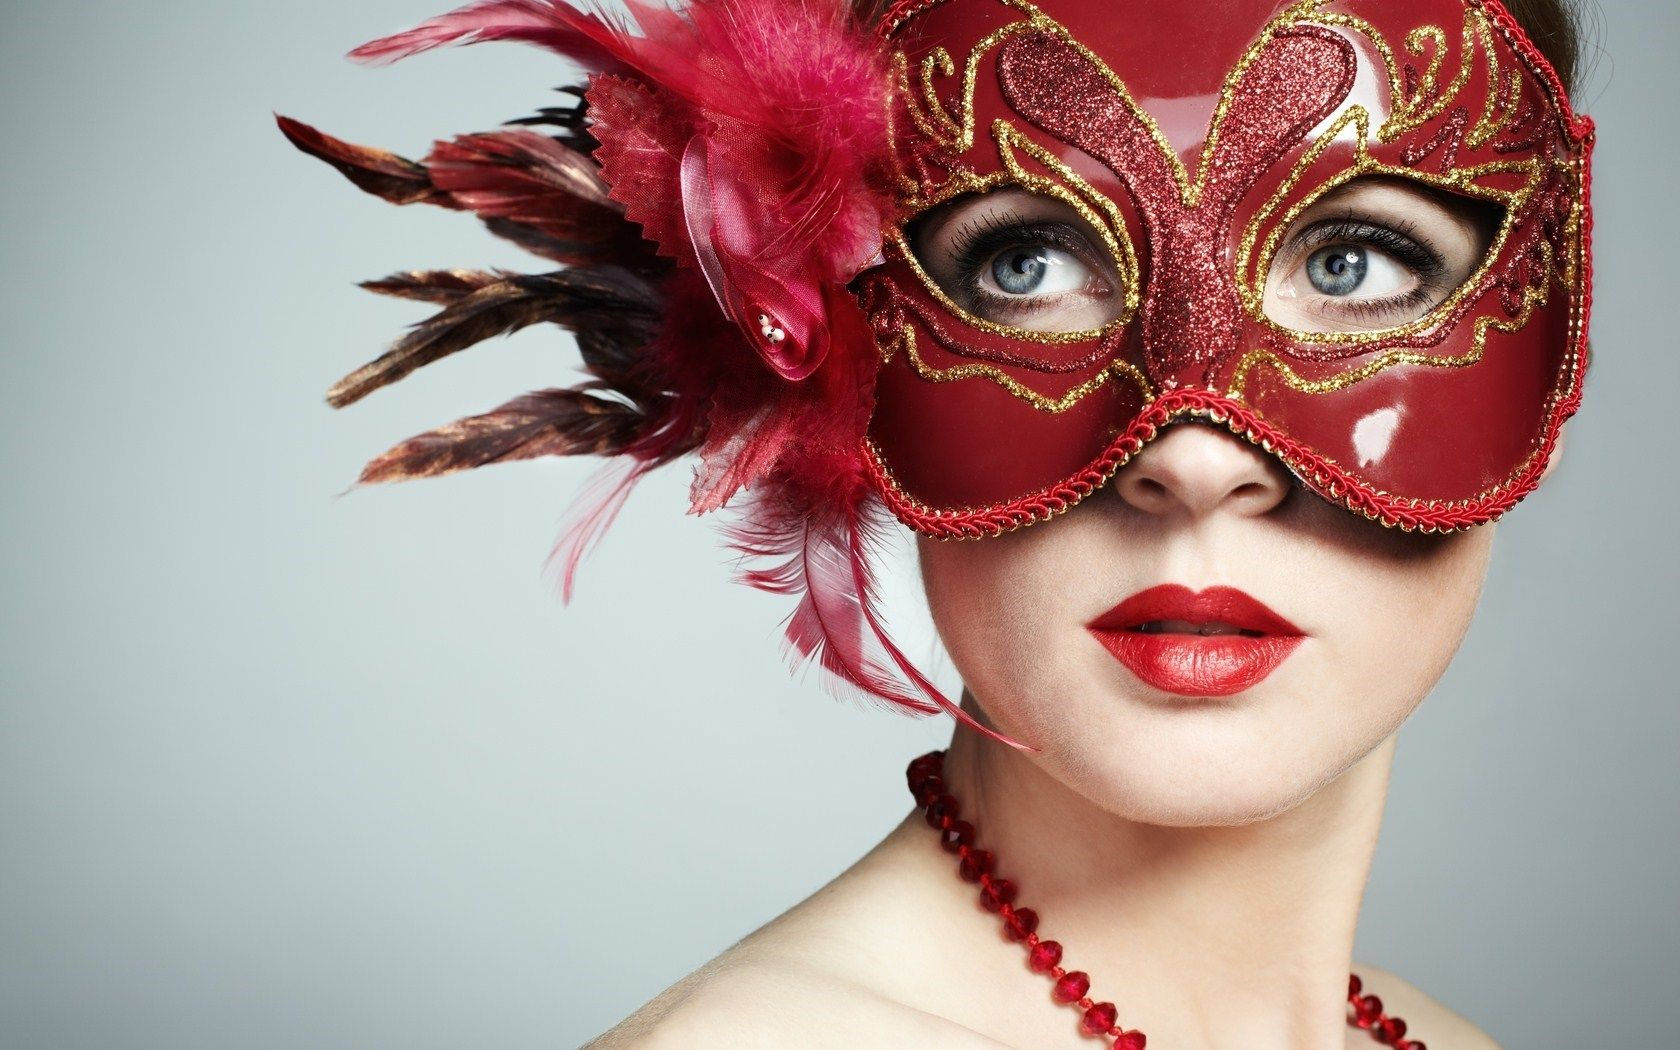 Girl Carnival Mask Red Lips Fashion Show Hd Wallpaper Red Mask